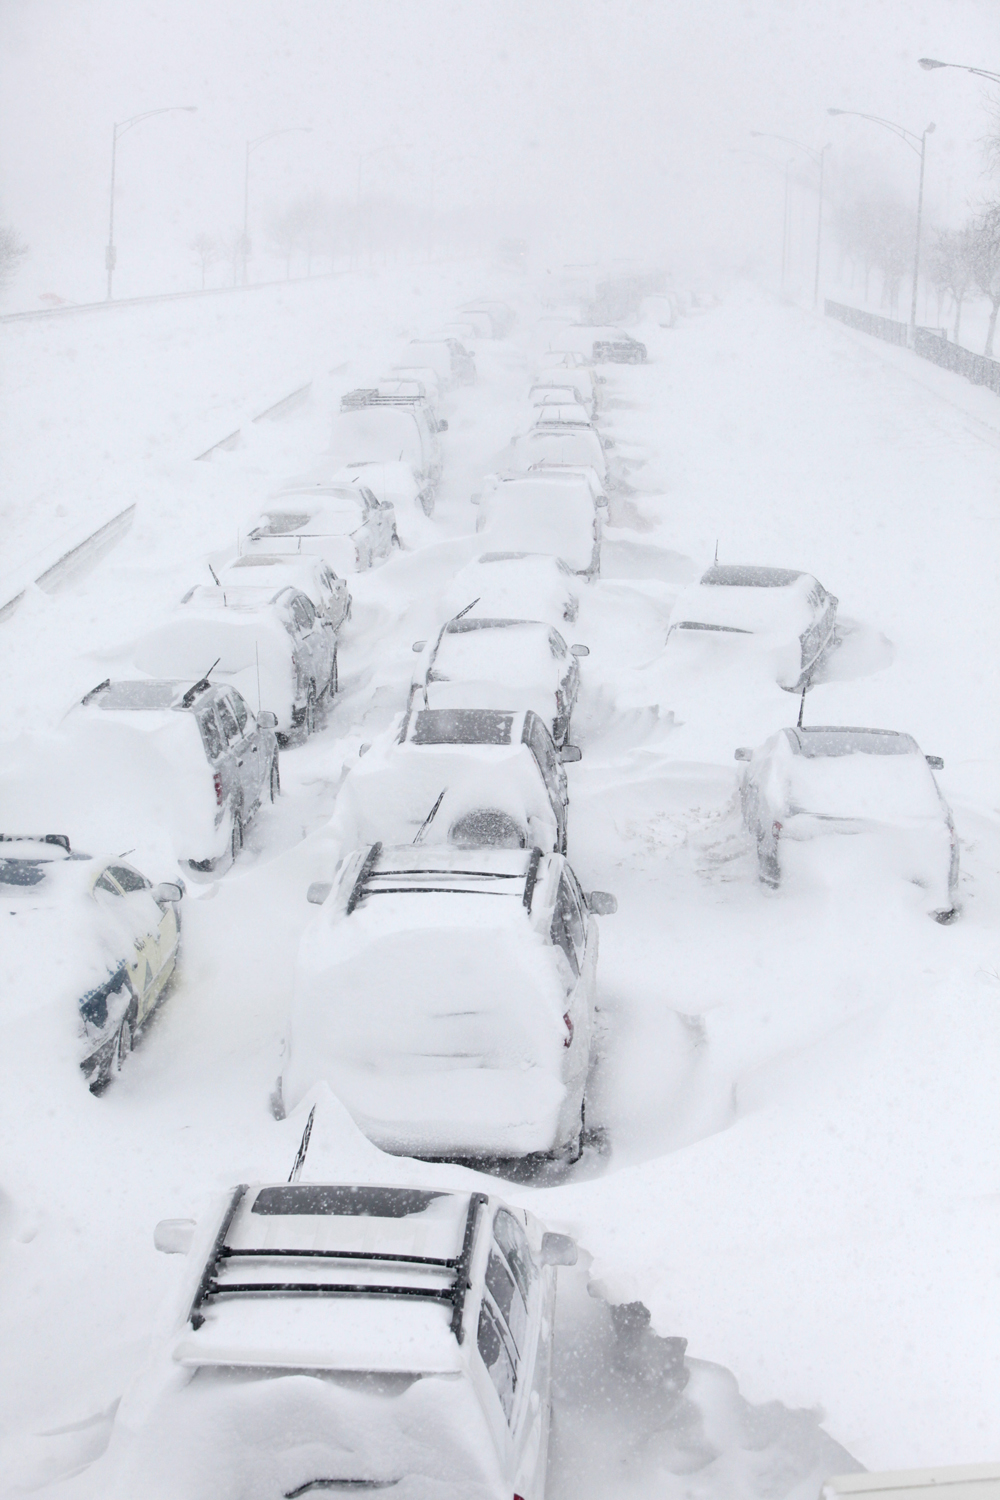 Chicago S Lake Shore Drive Reopens After Blizzard